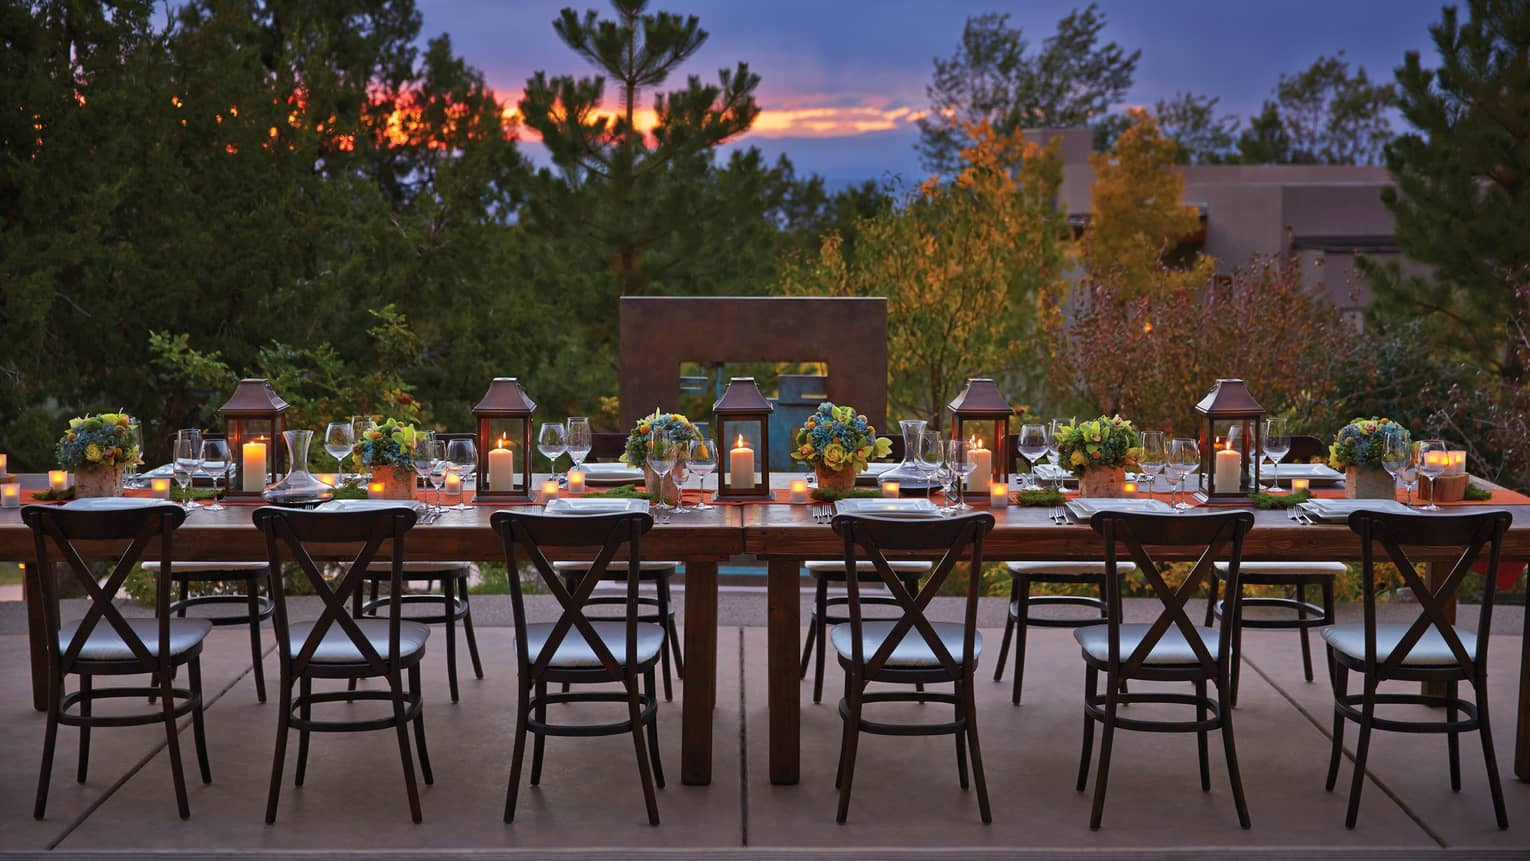 Long, candle-lit dining table on Terra patio at sunset